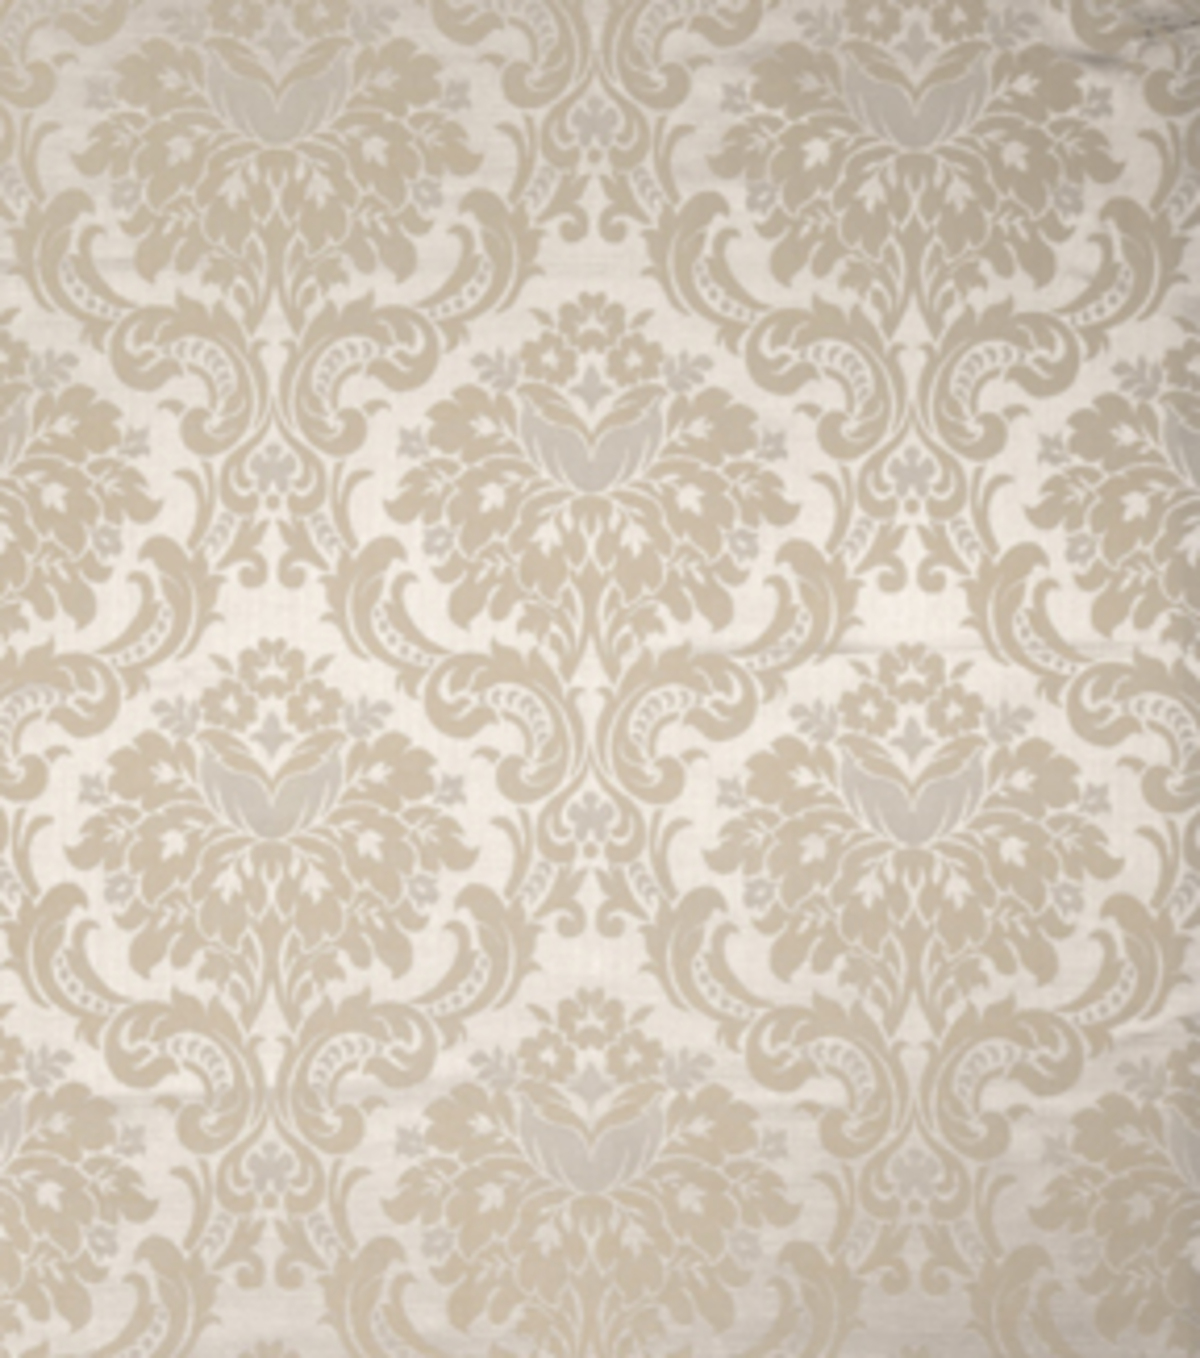 Home Decor 8\u0022x8\u0022 Fabric Swatch-Eaton Square Hobby /  Beige